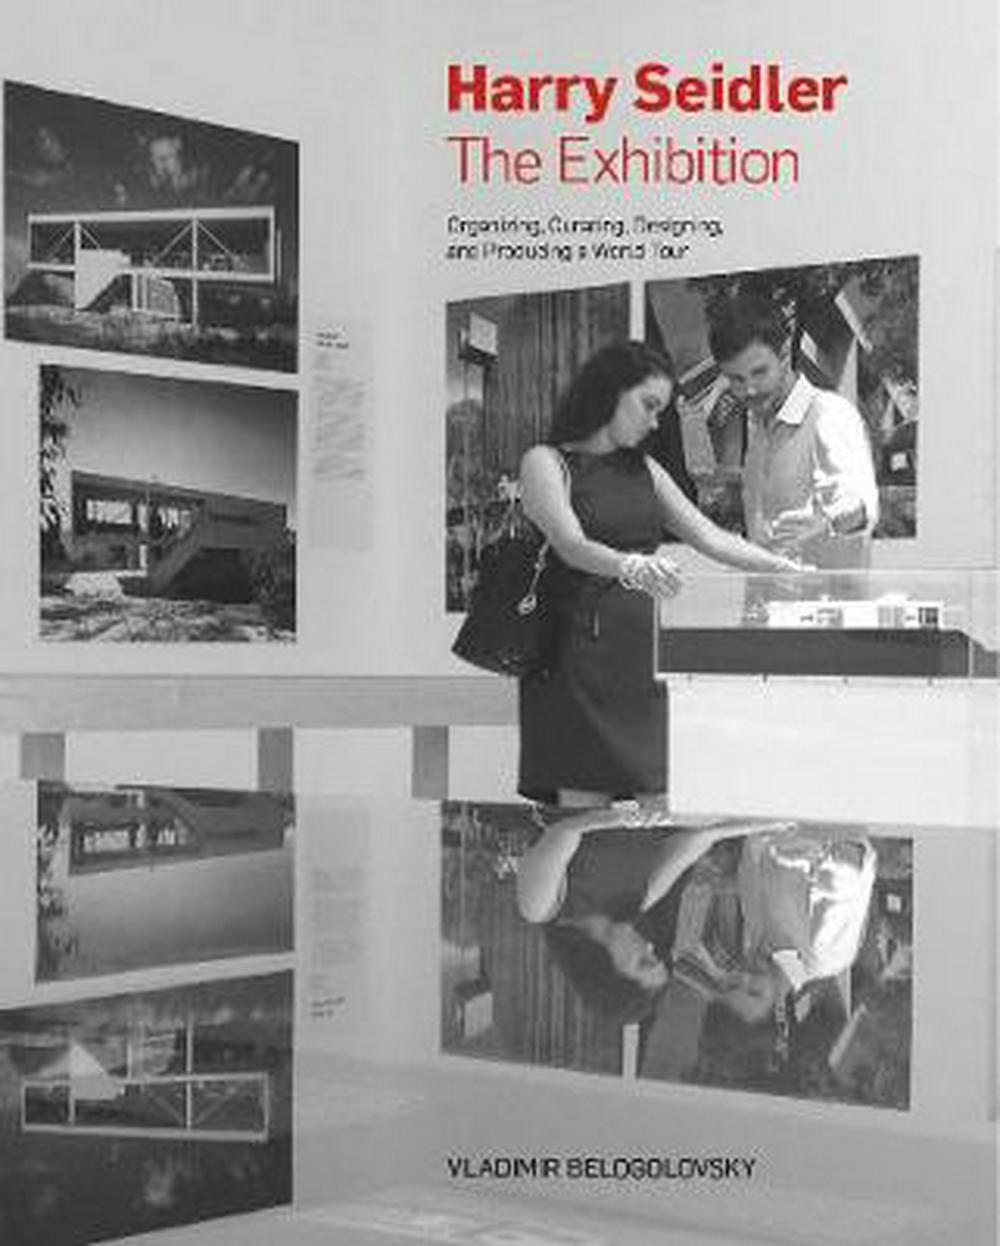 Harry Seidler: The Exhibition: Organizing, Curating, Designing, and Producing a World Tour by Vladimir Belogolovsky, ISBN: 9781946226112